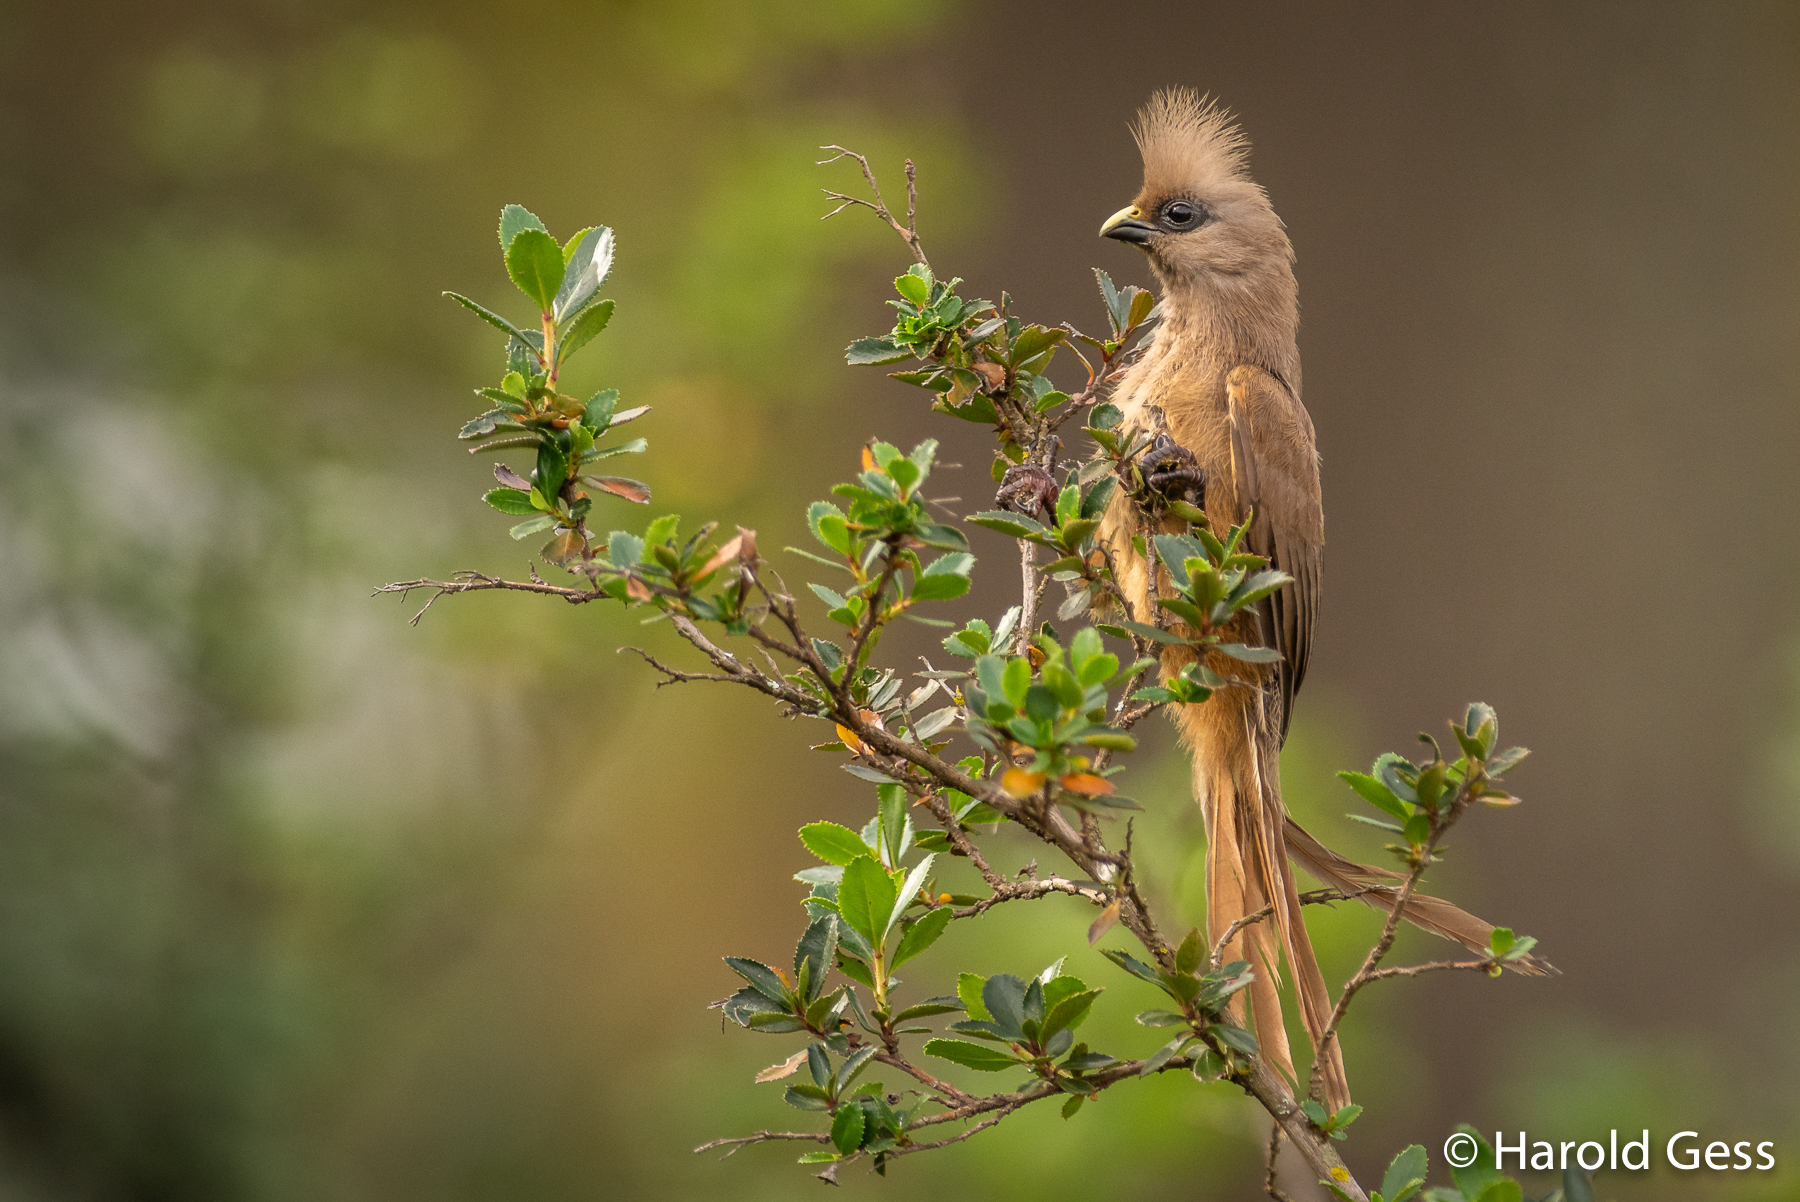 Speckled Mousebird (Colius striatus), Grahamstown, Eastern Cape, May 2019